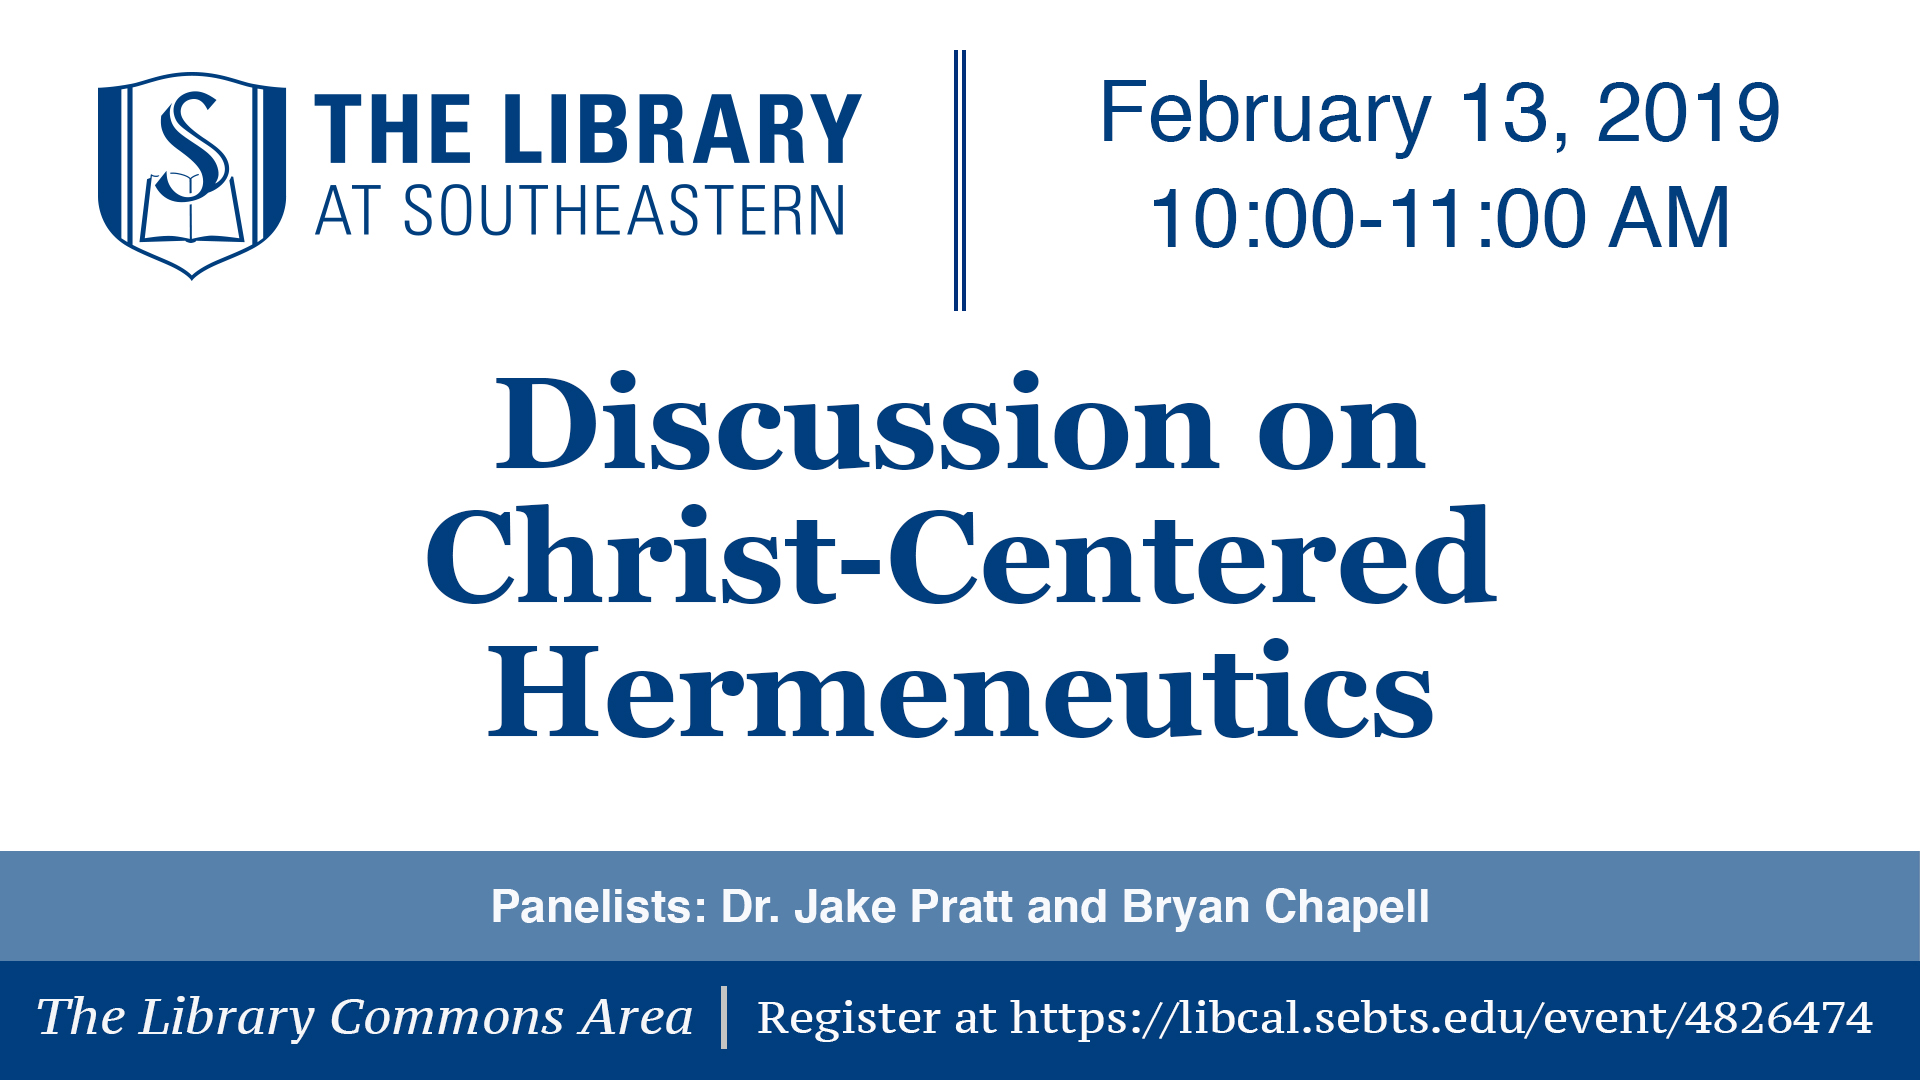 Library Talk: Discussion on Christ-Centered Hermeneutics